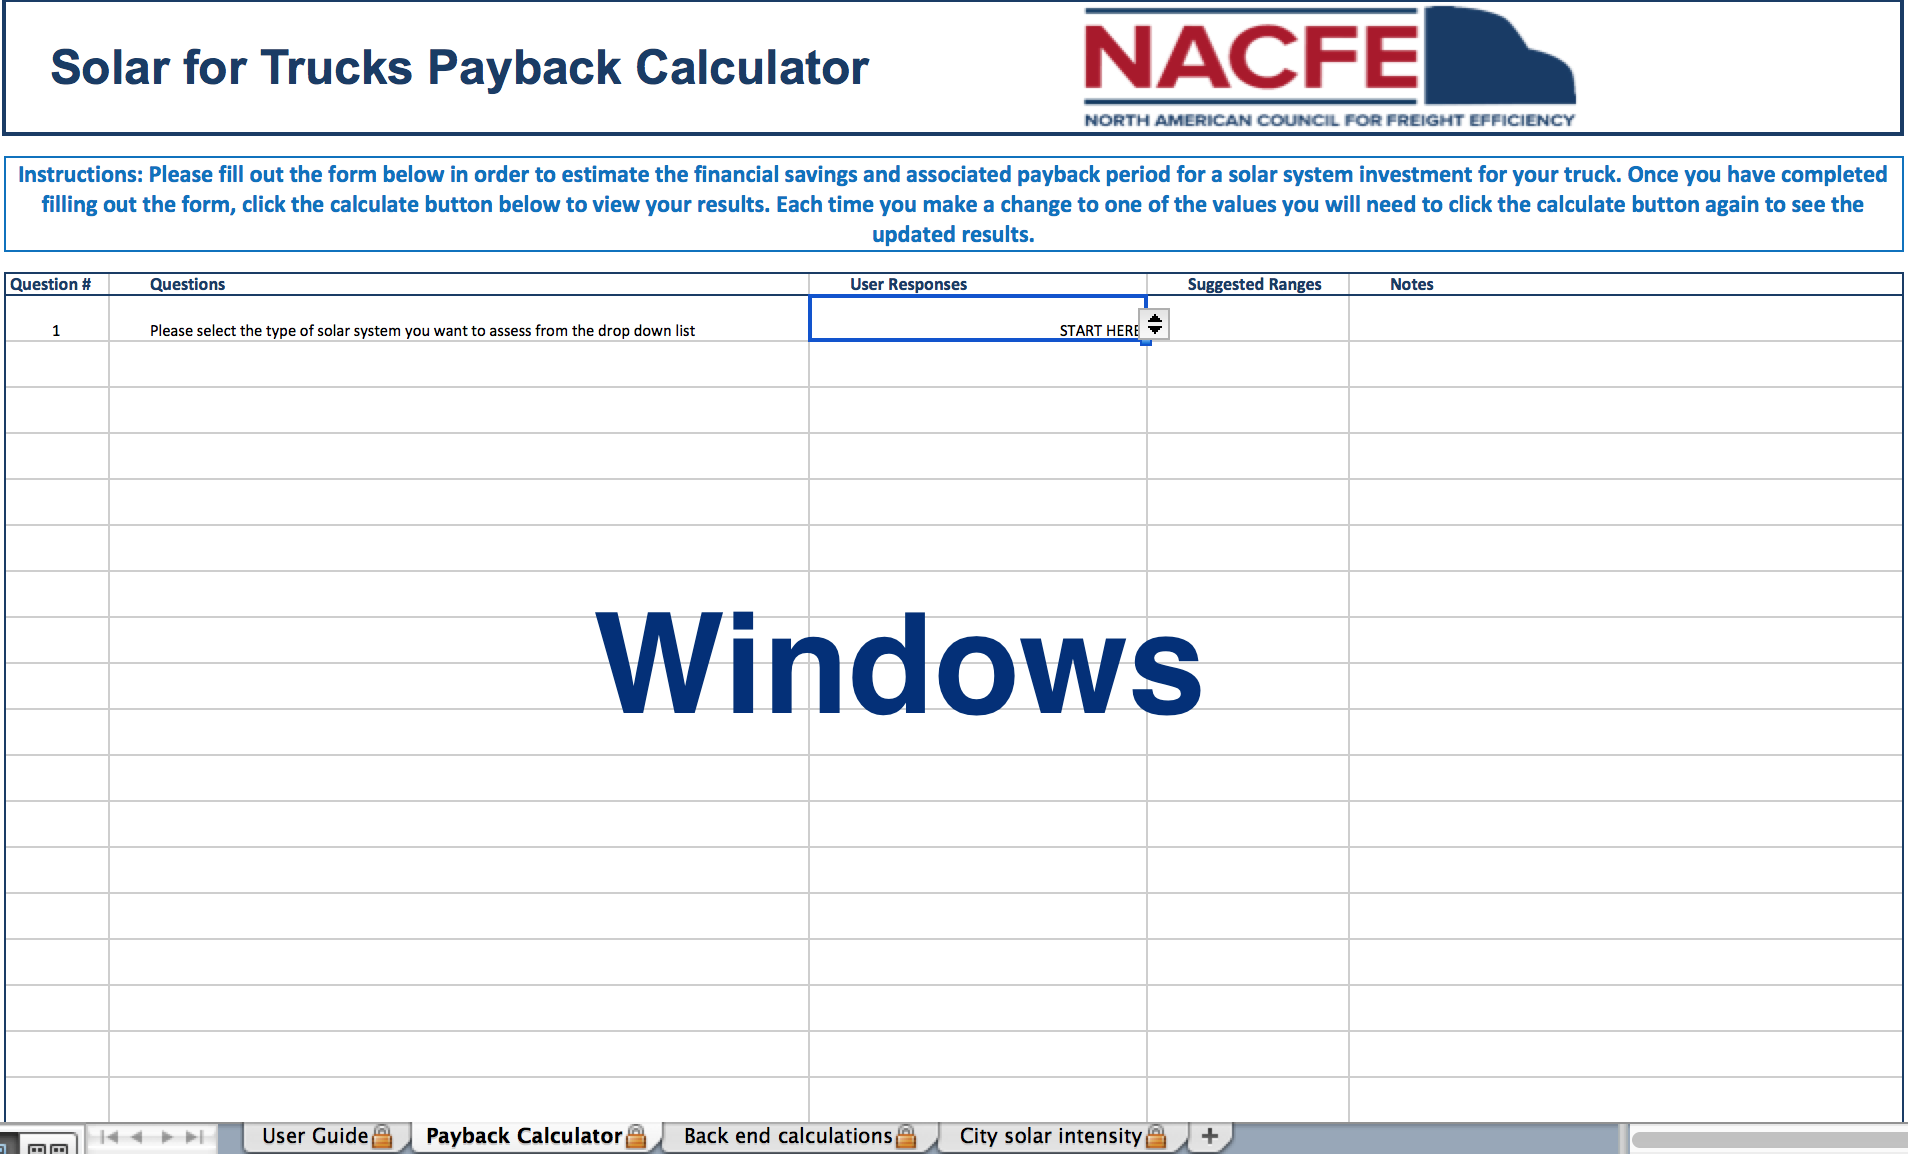 nacfe-solar-payback-calculator-for-windows-pcs-june-2018